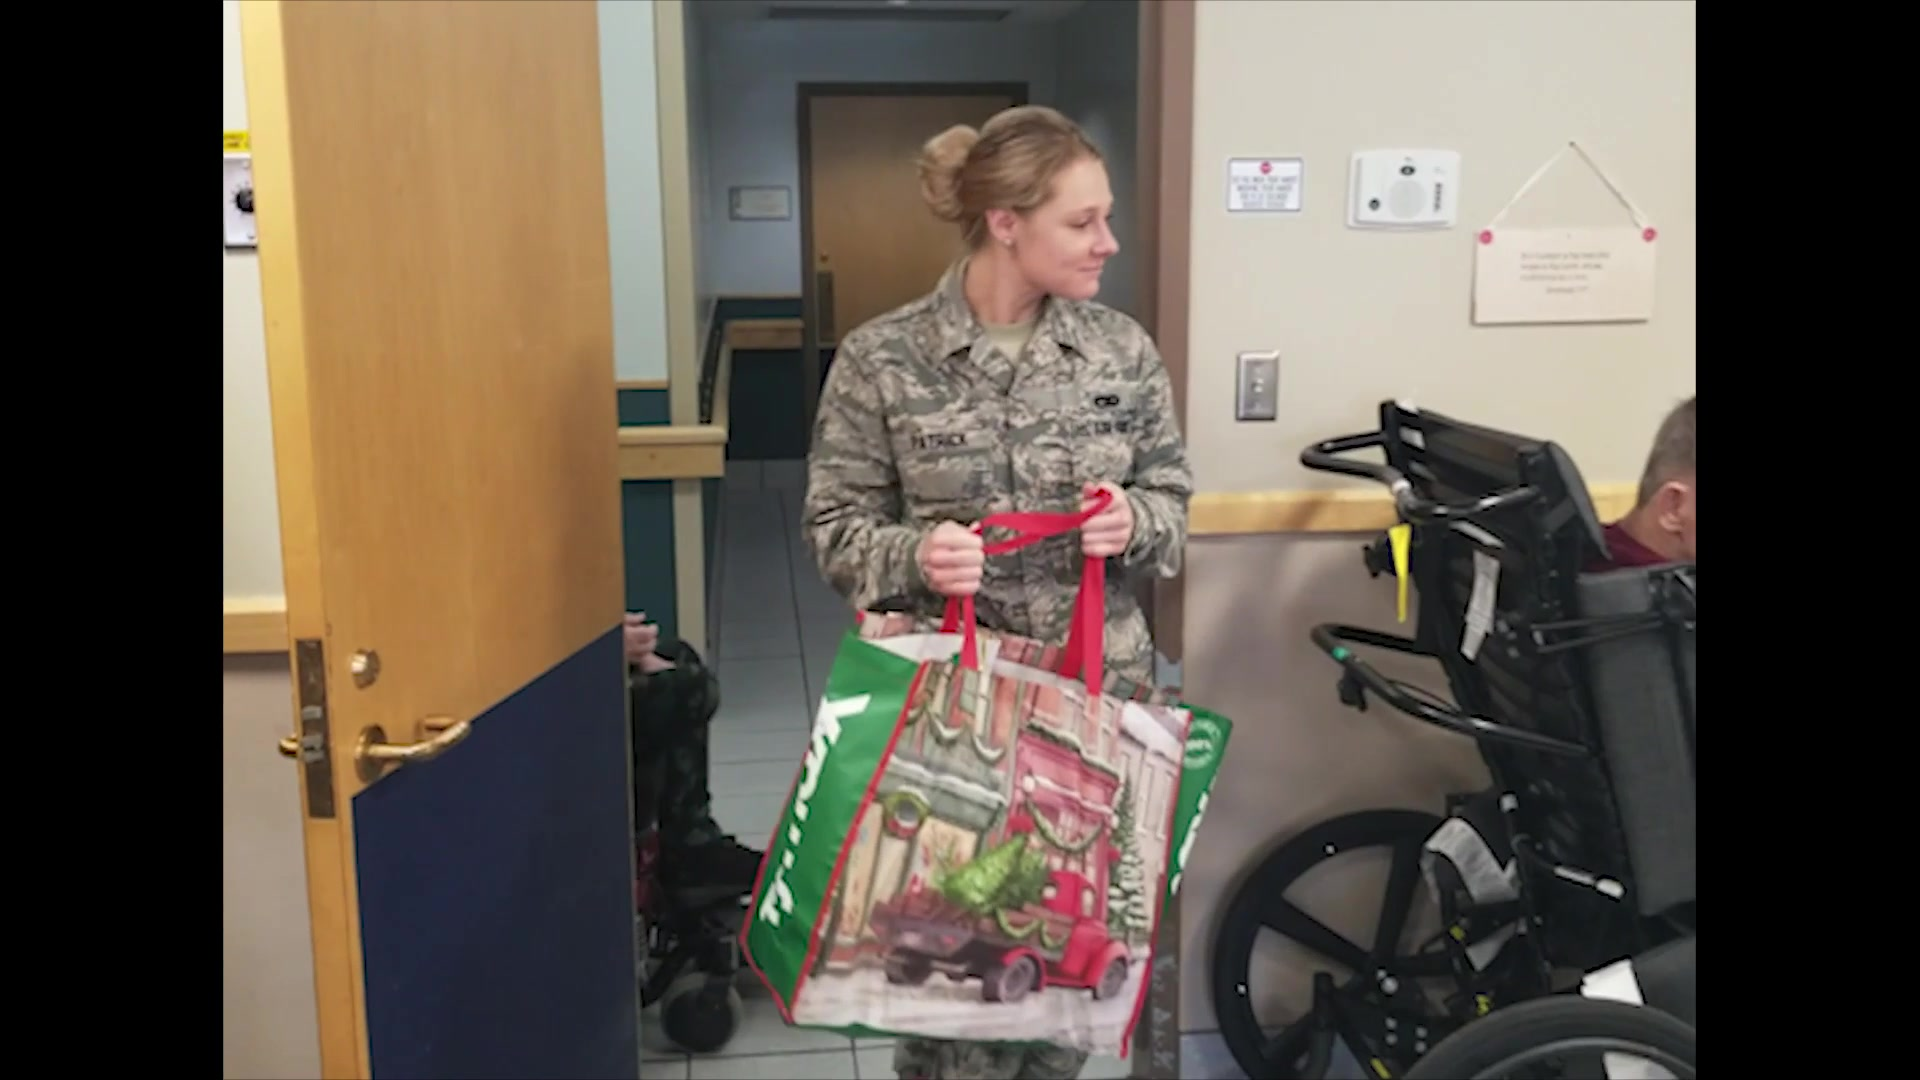 TINKER AIR FORCE BASE, Okla. -- For the 23rd year in a row, Reserve Citizen Airmen from the 507th Air Refueling Wing here visited with the residents of the Norman Veterans Center to deliver gifts, share food, and exchange stories during their annual Christmas party Dec. 20, 2018, in Norman, Oklahoma. (U.S. Air Force video by Maj. Jon Quinlan)